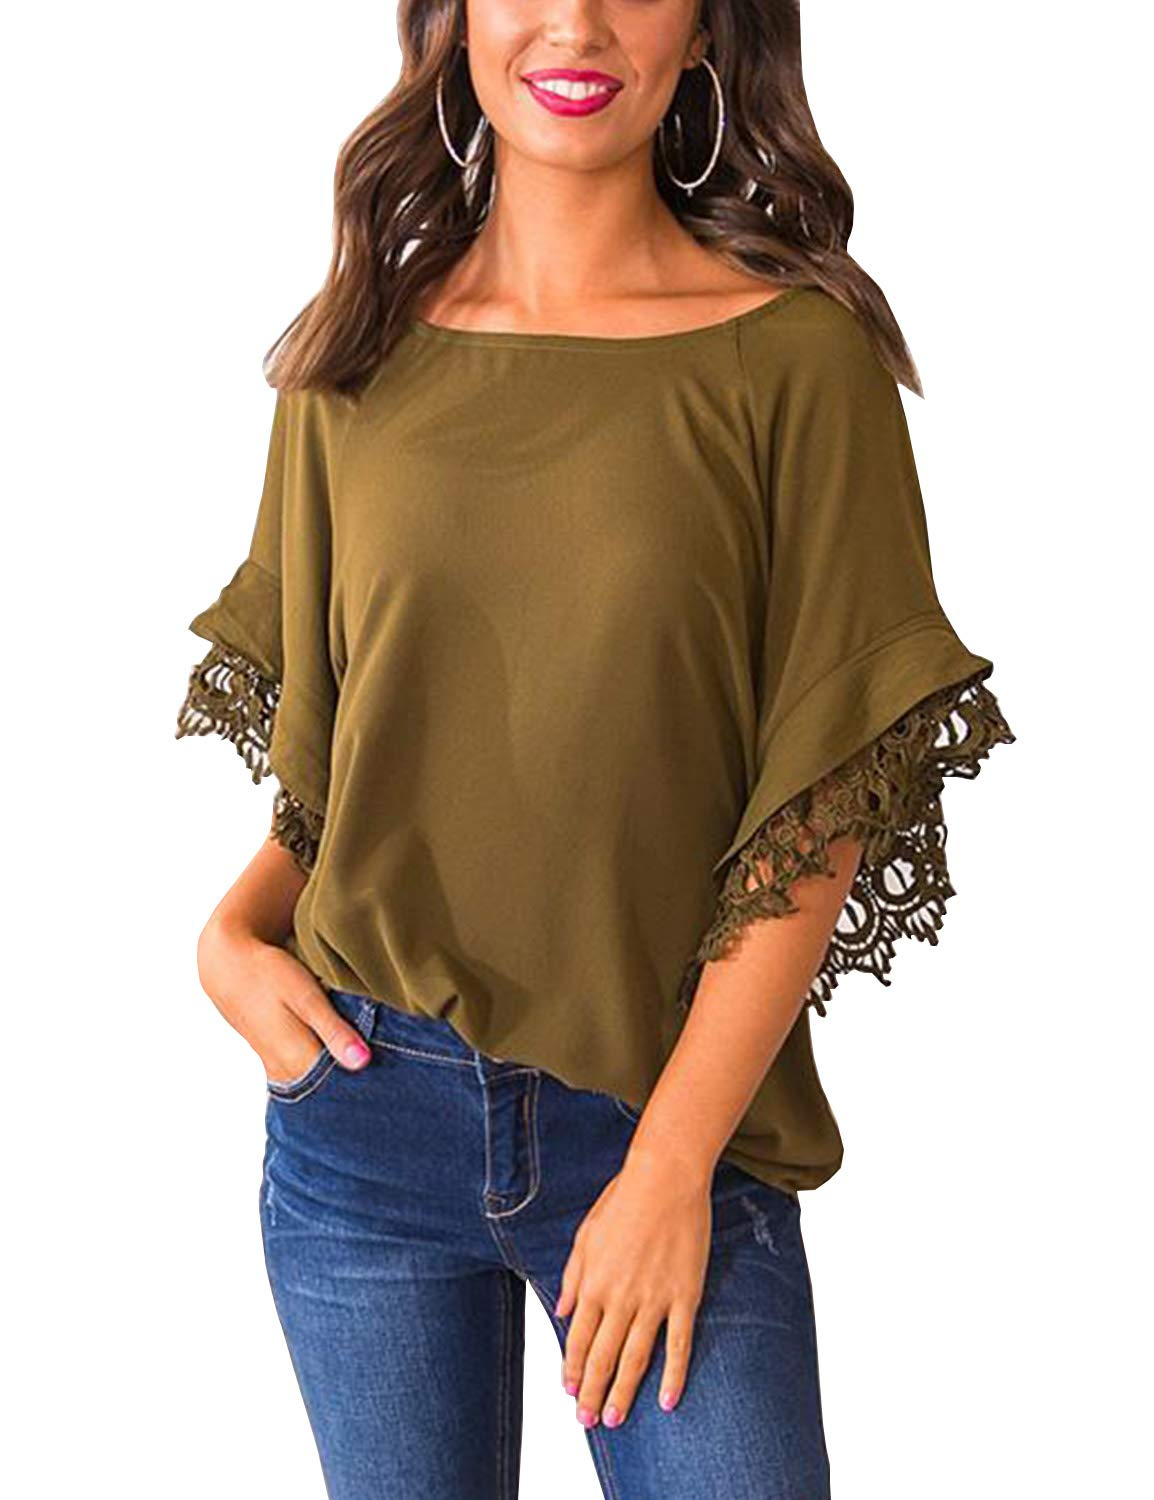 Blooming Jelly Women's Scoop Neck Flare Batwing Sleeve Solid Color Top Yellow